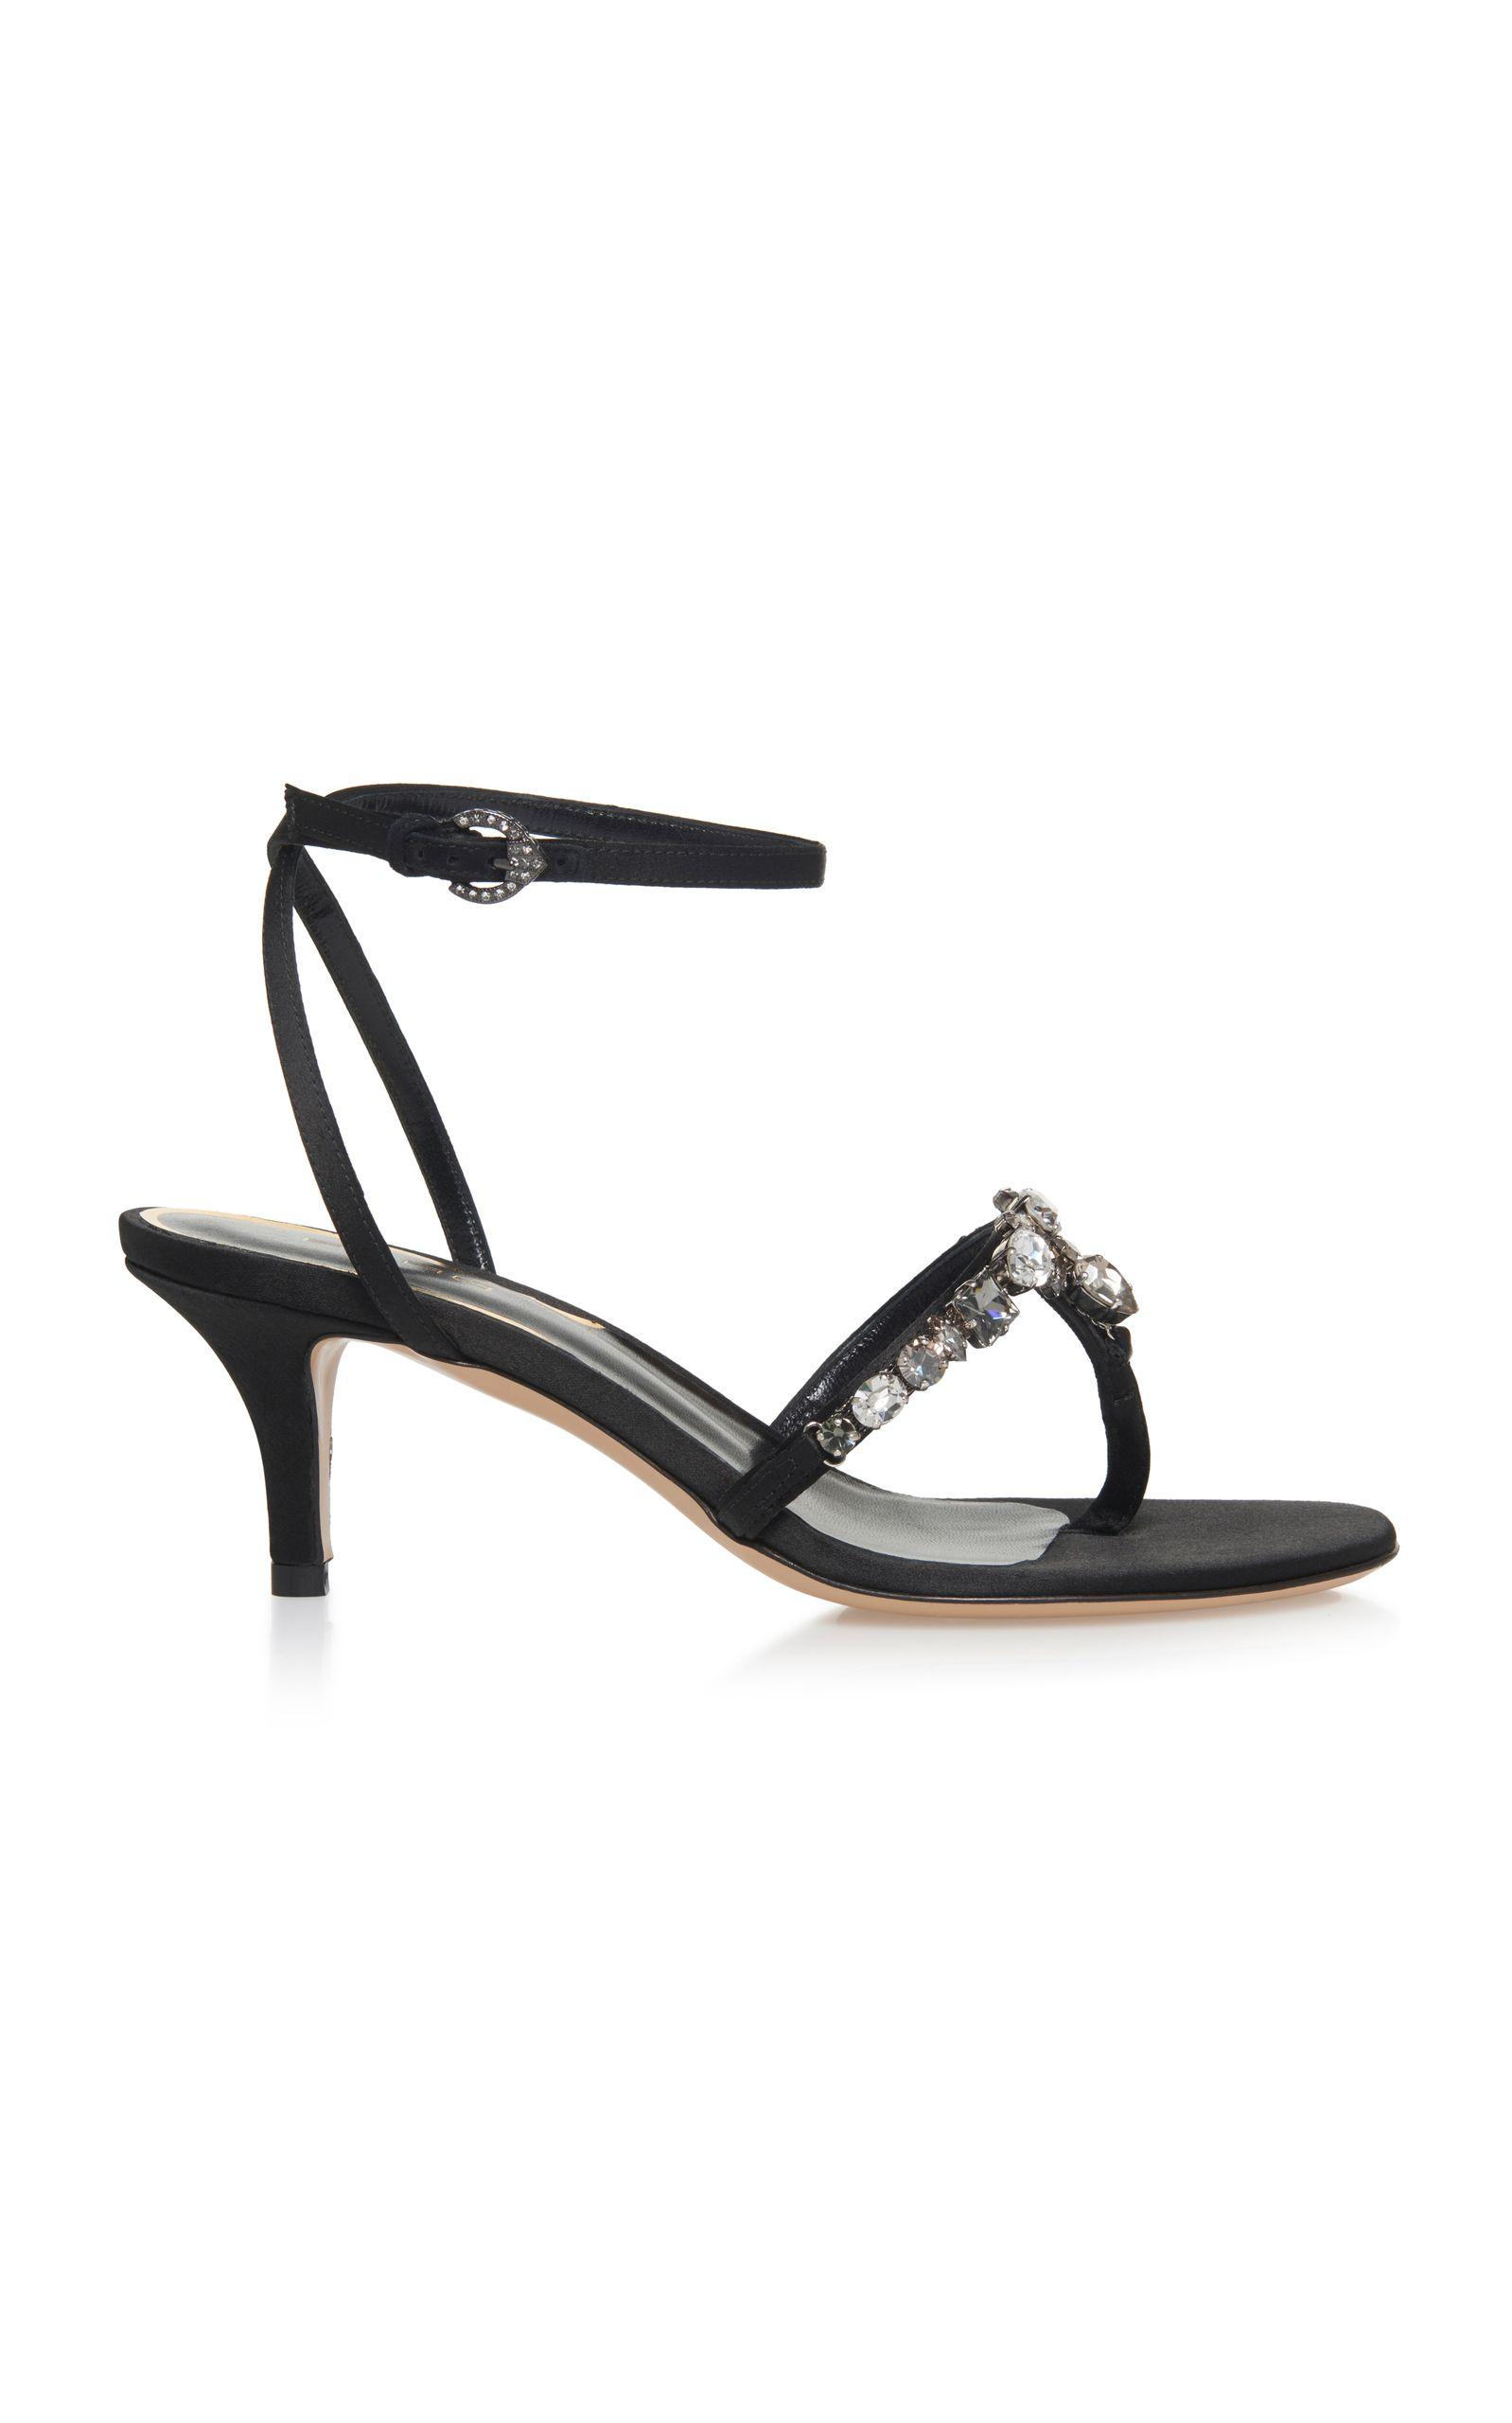 Embellished Kitten Heel Sandal In Black Kitten Heel Sandals Heels Kitten Heels